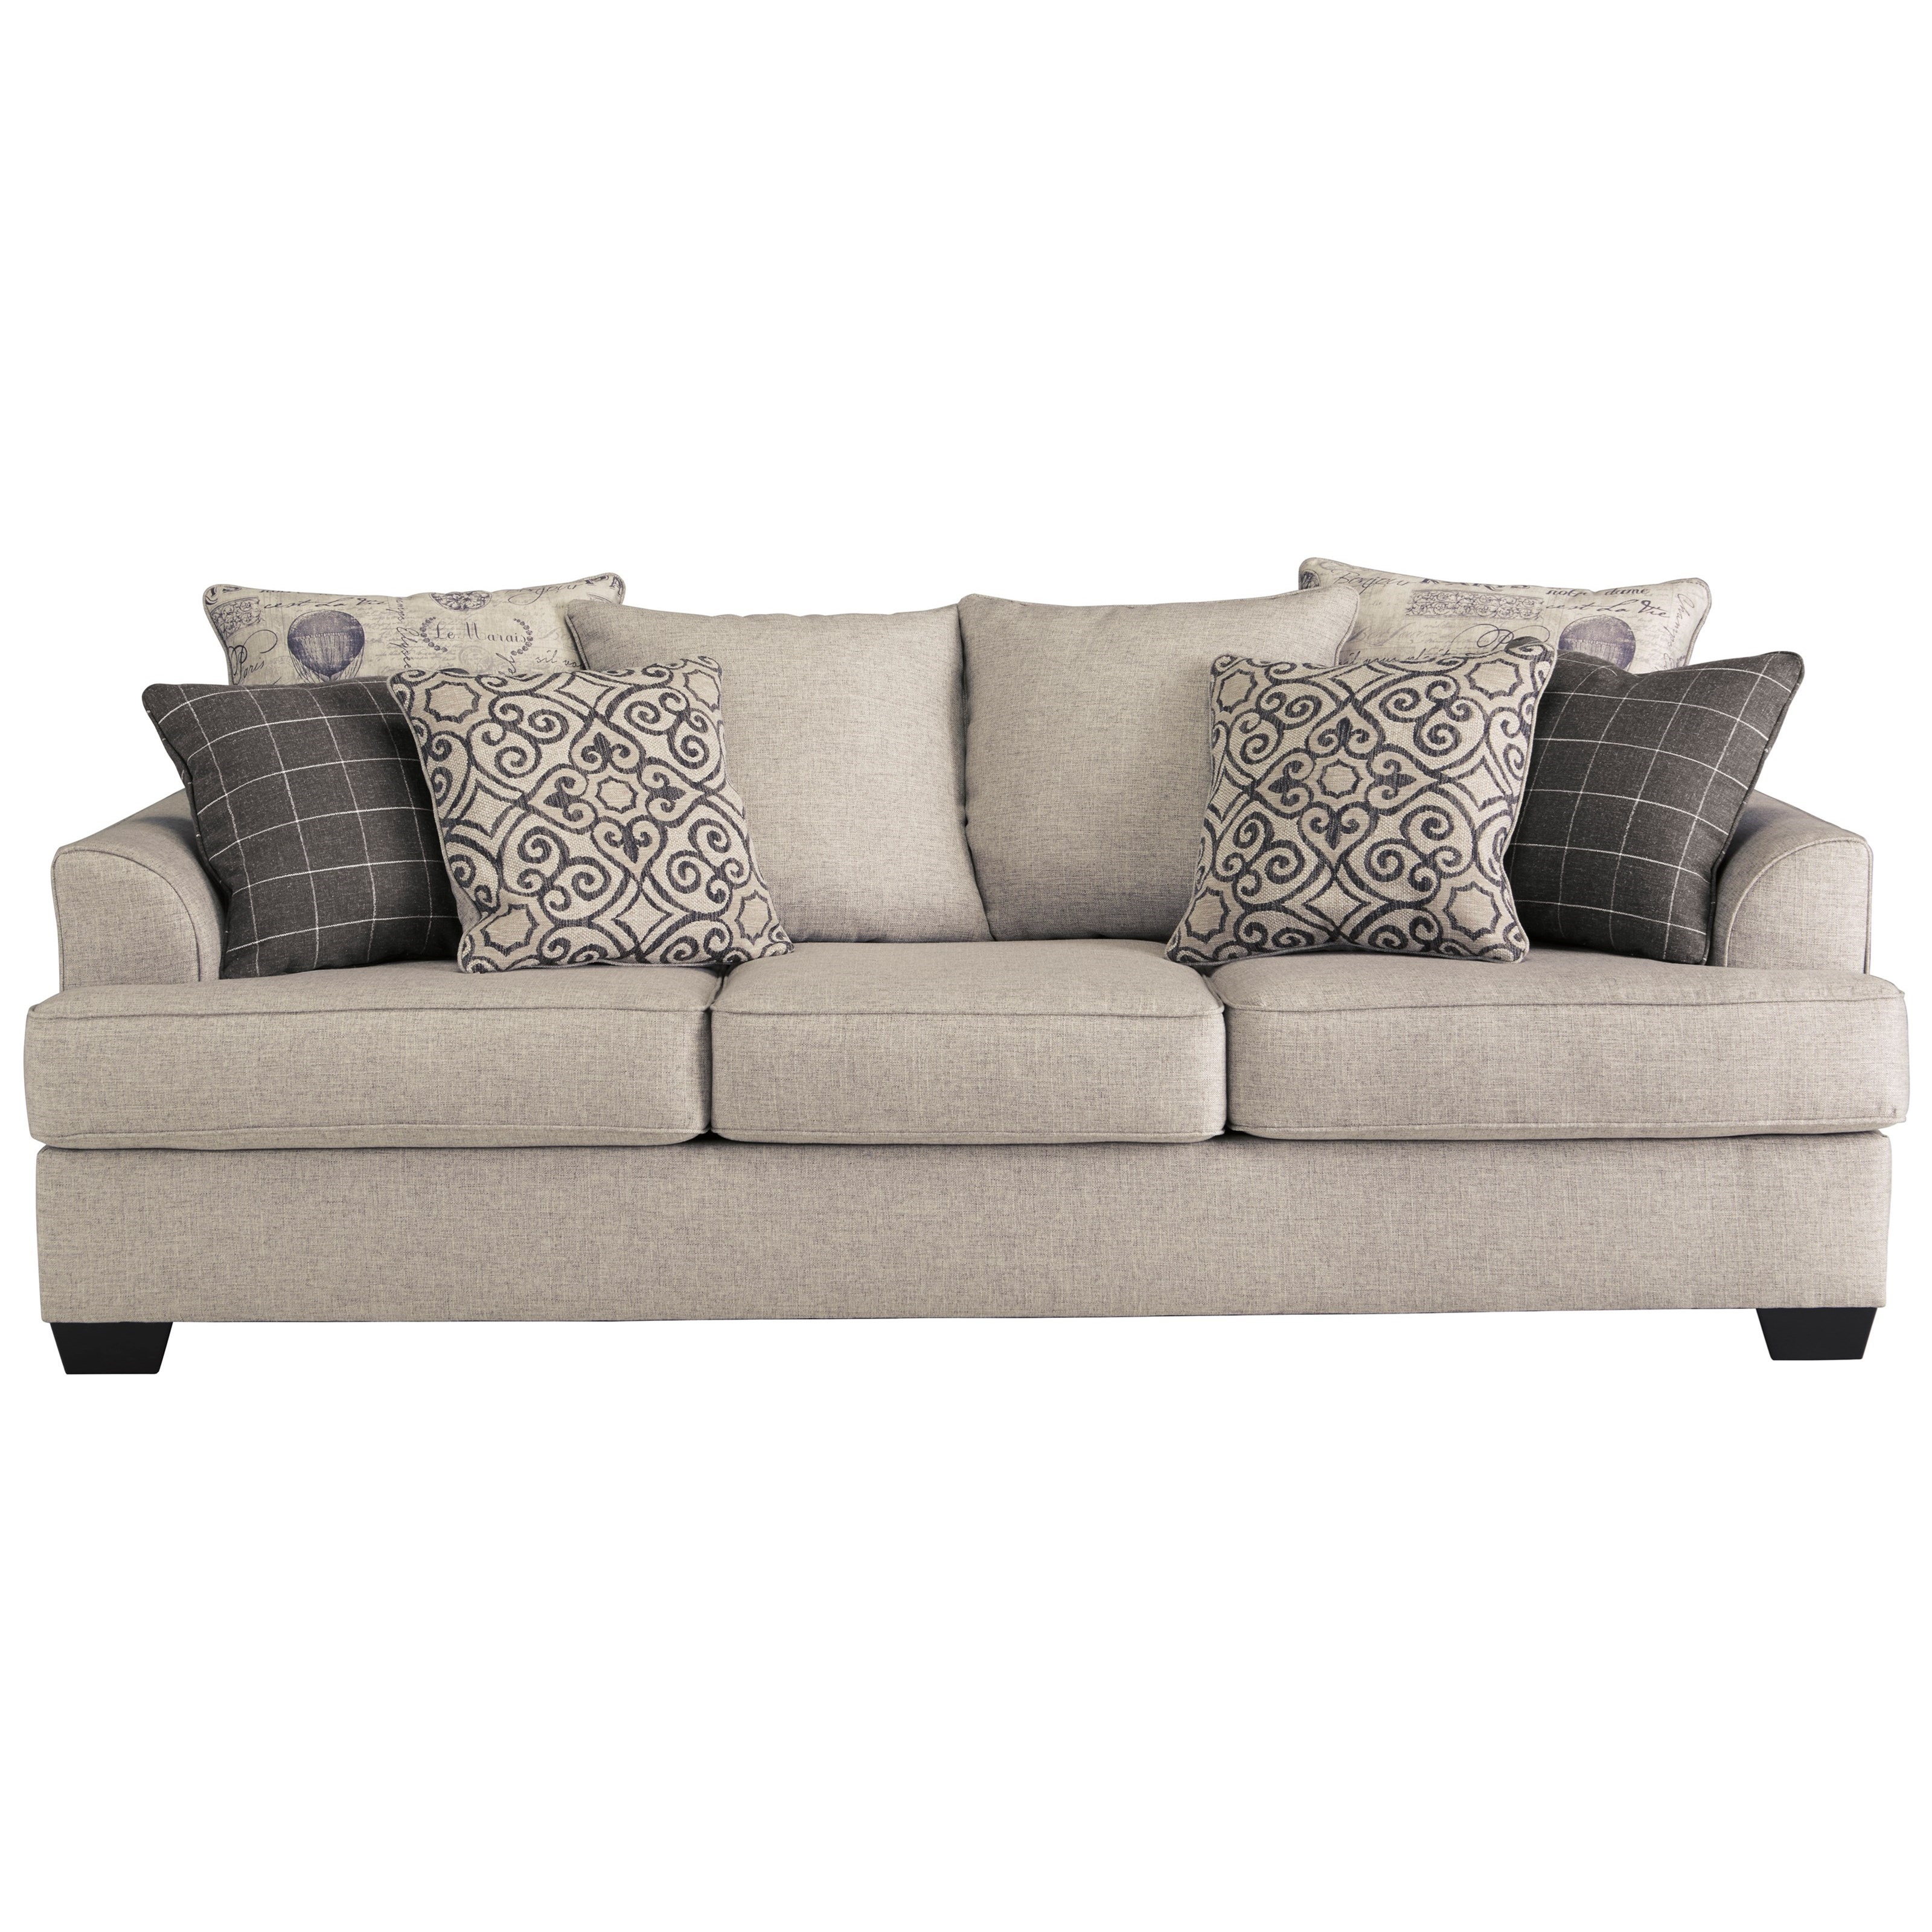 Velletri Sofa by Signature Design by Ashley at Northeast Factory Direct